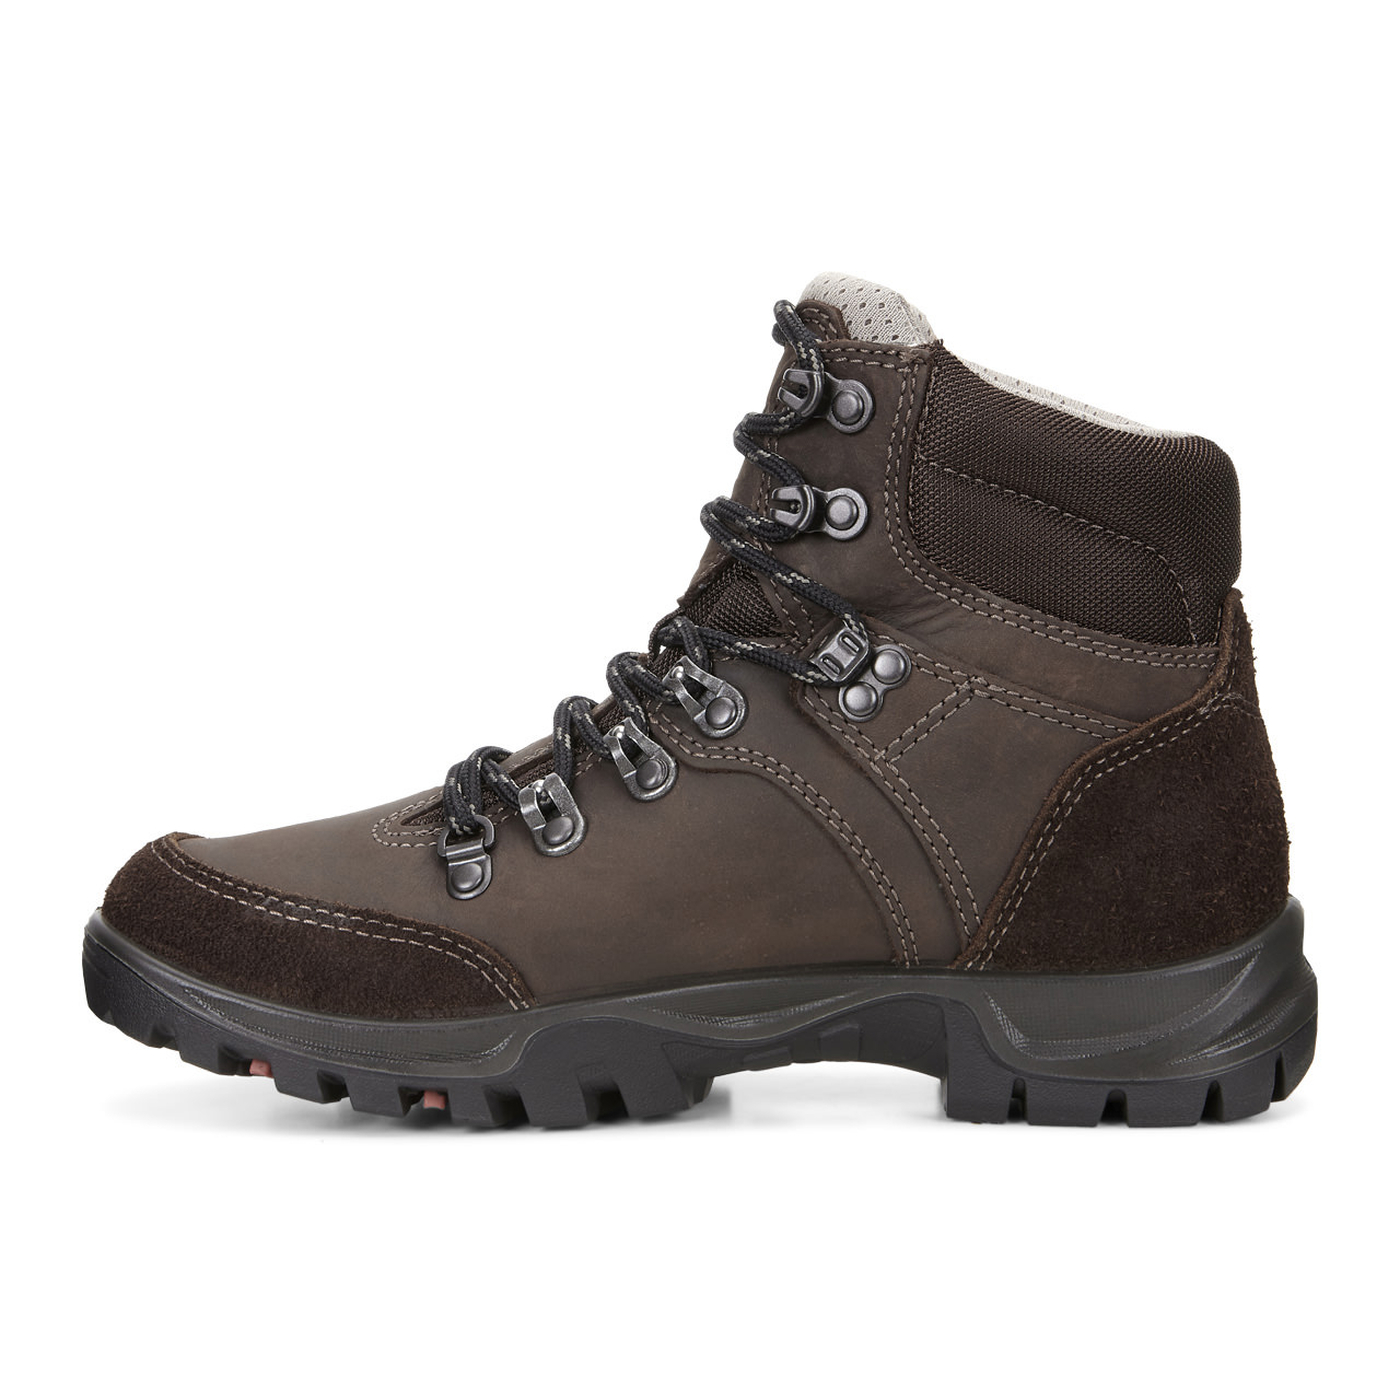 ECCO W Xpedition III Mid GTX